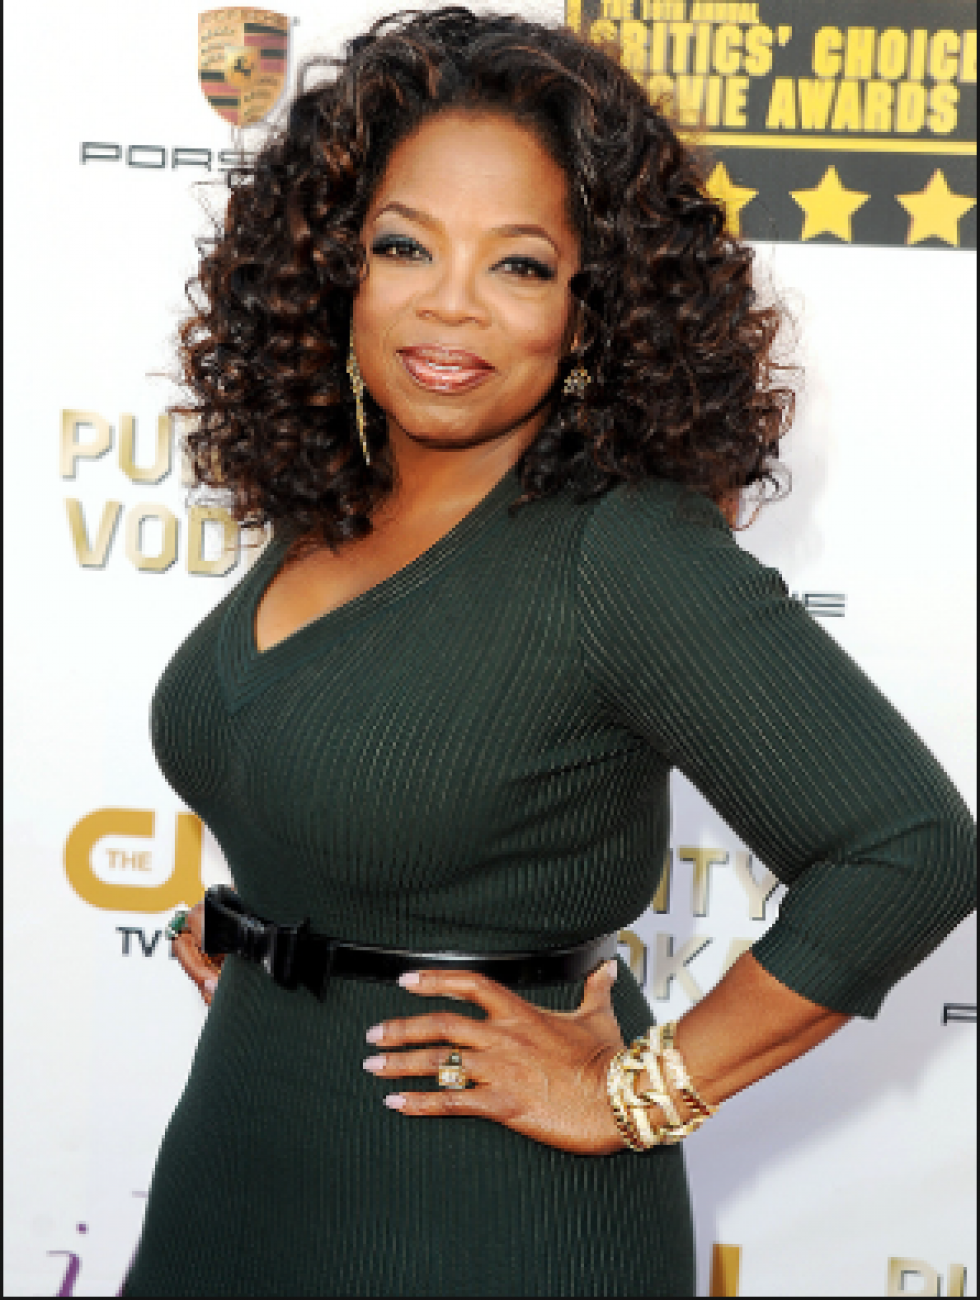 Oprah Winfrey weight loss image